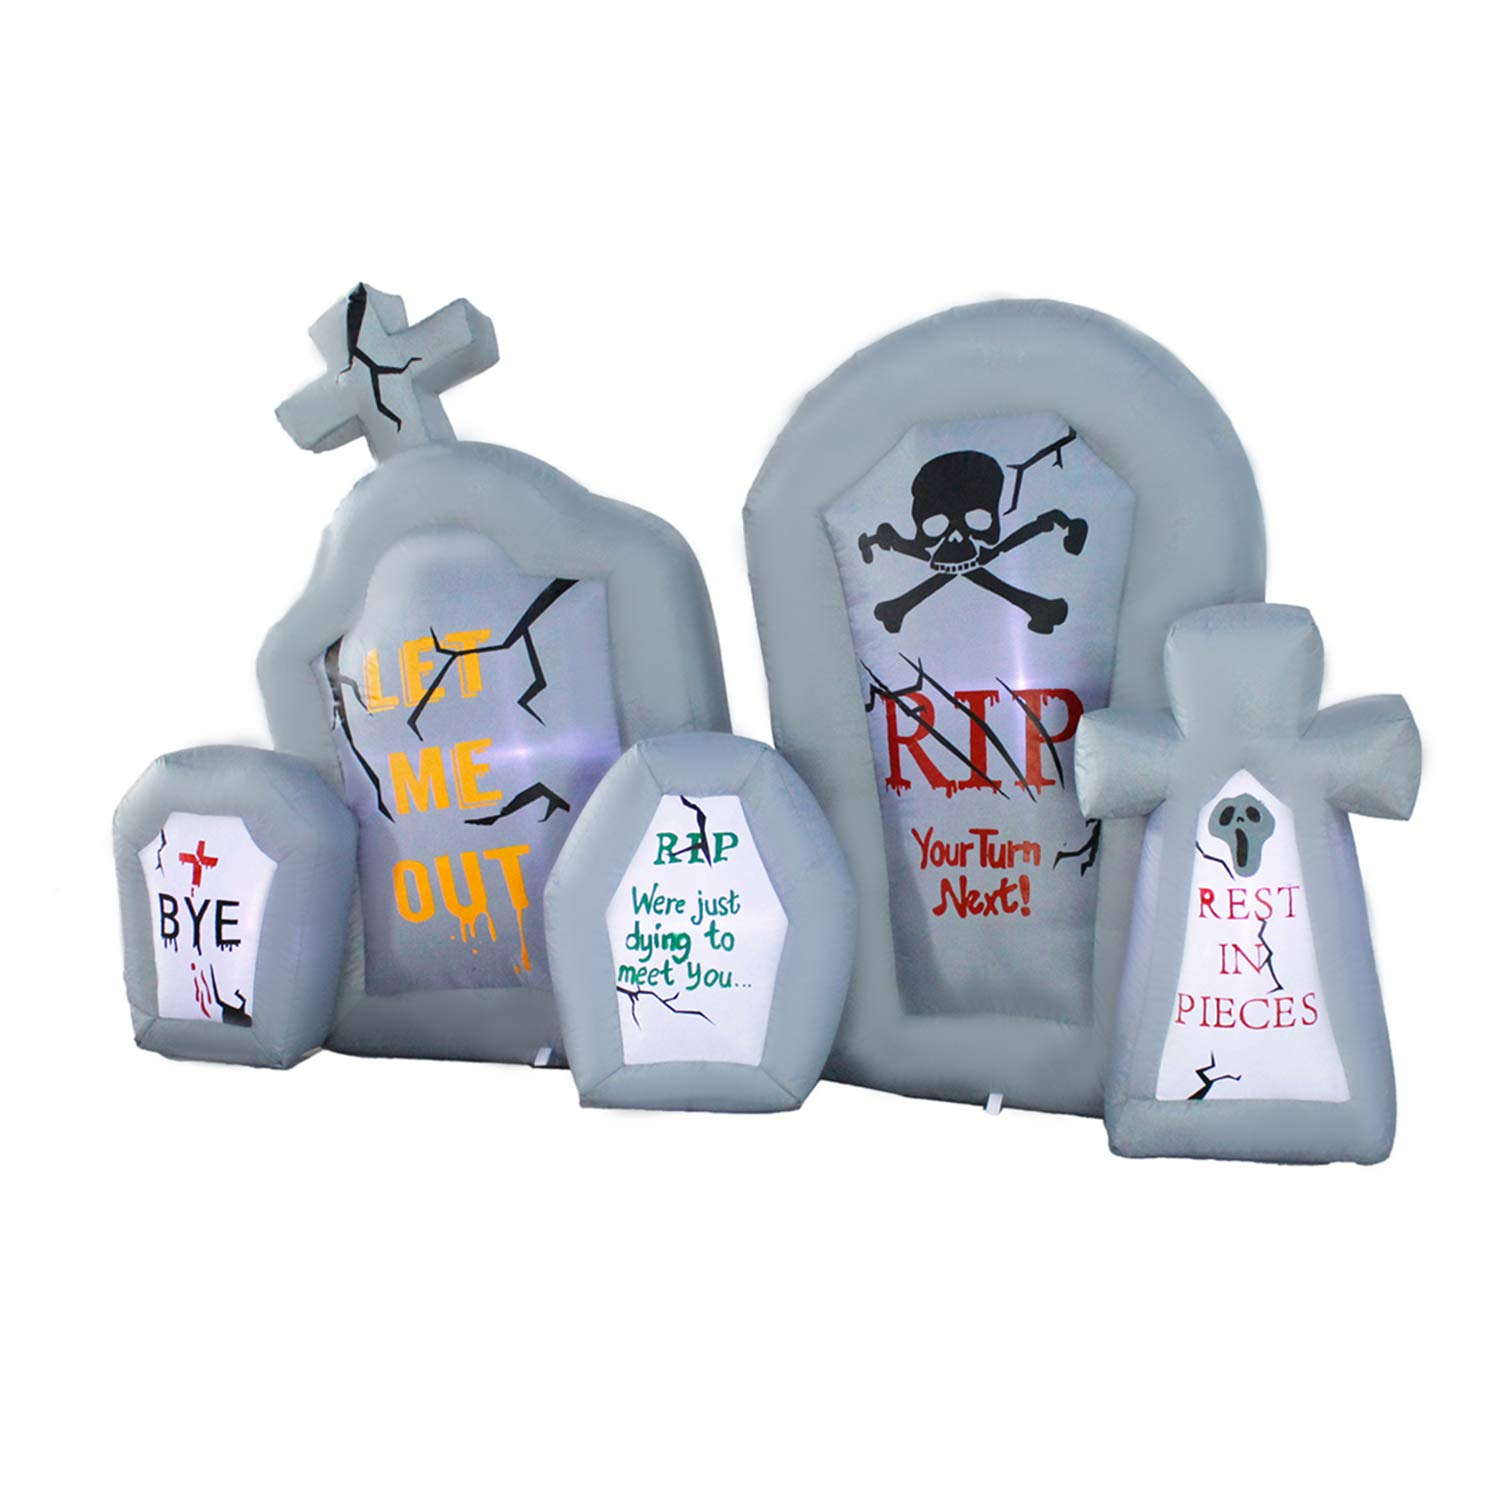 Amazon.com: Seasonblow - Piedra inflable para Halloween ...